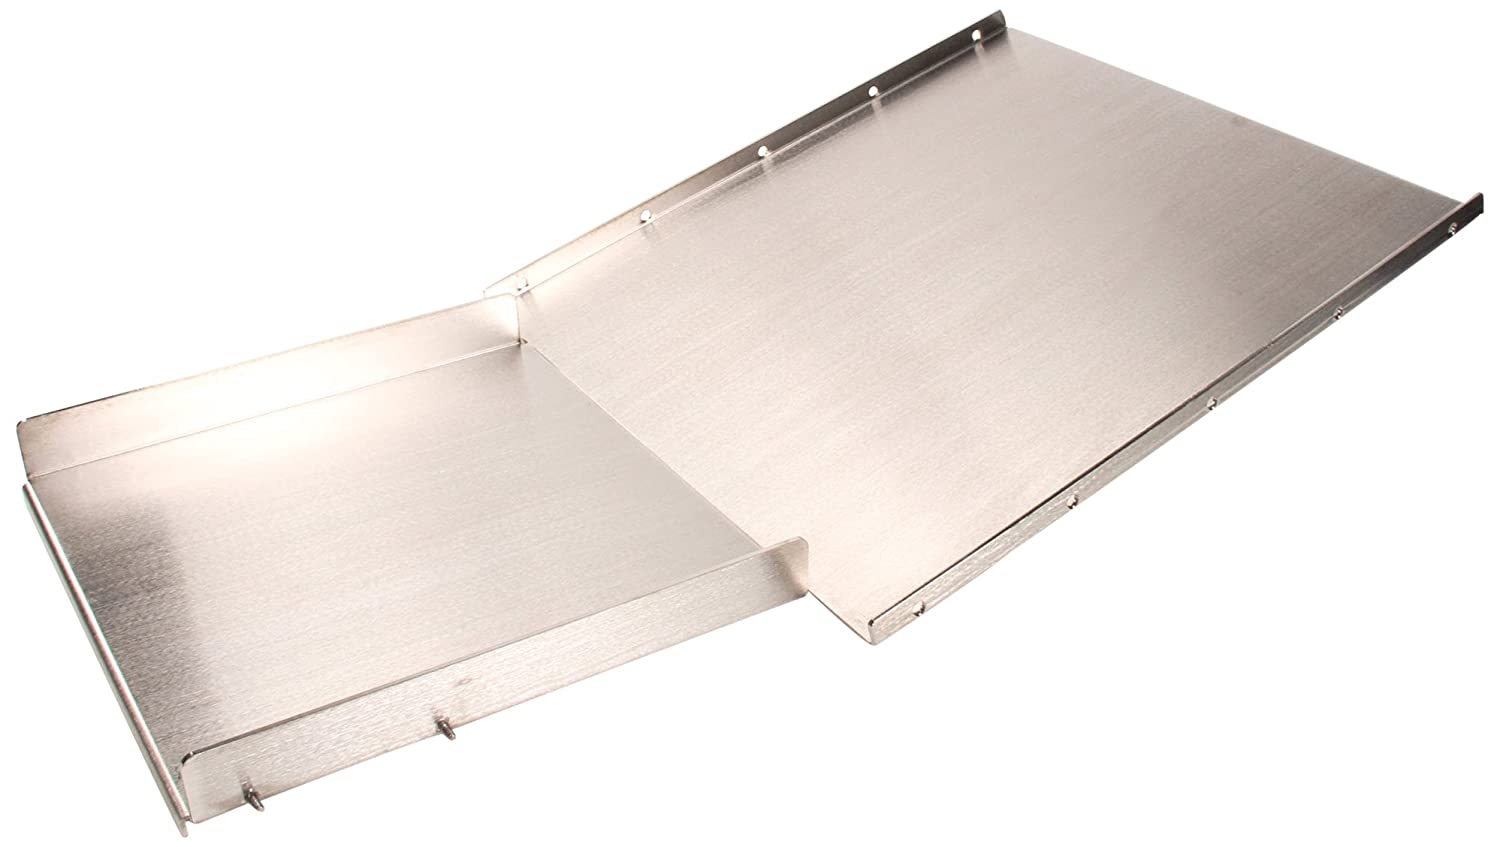 Apw Wyott 84220 Grill Plate Assembly